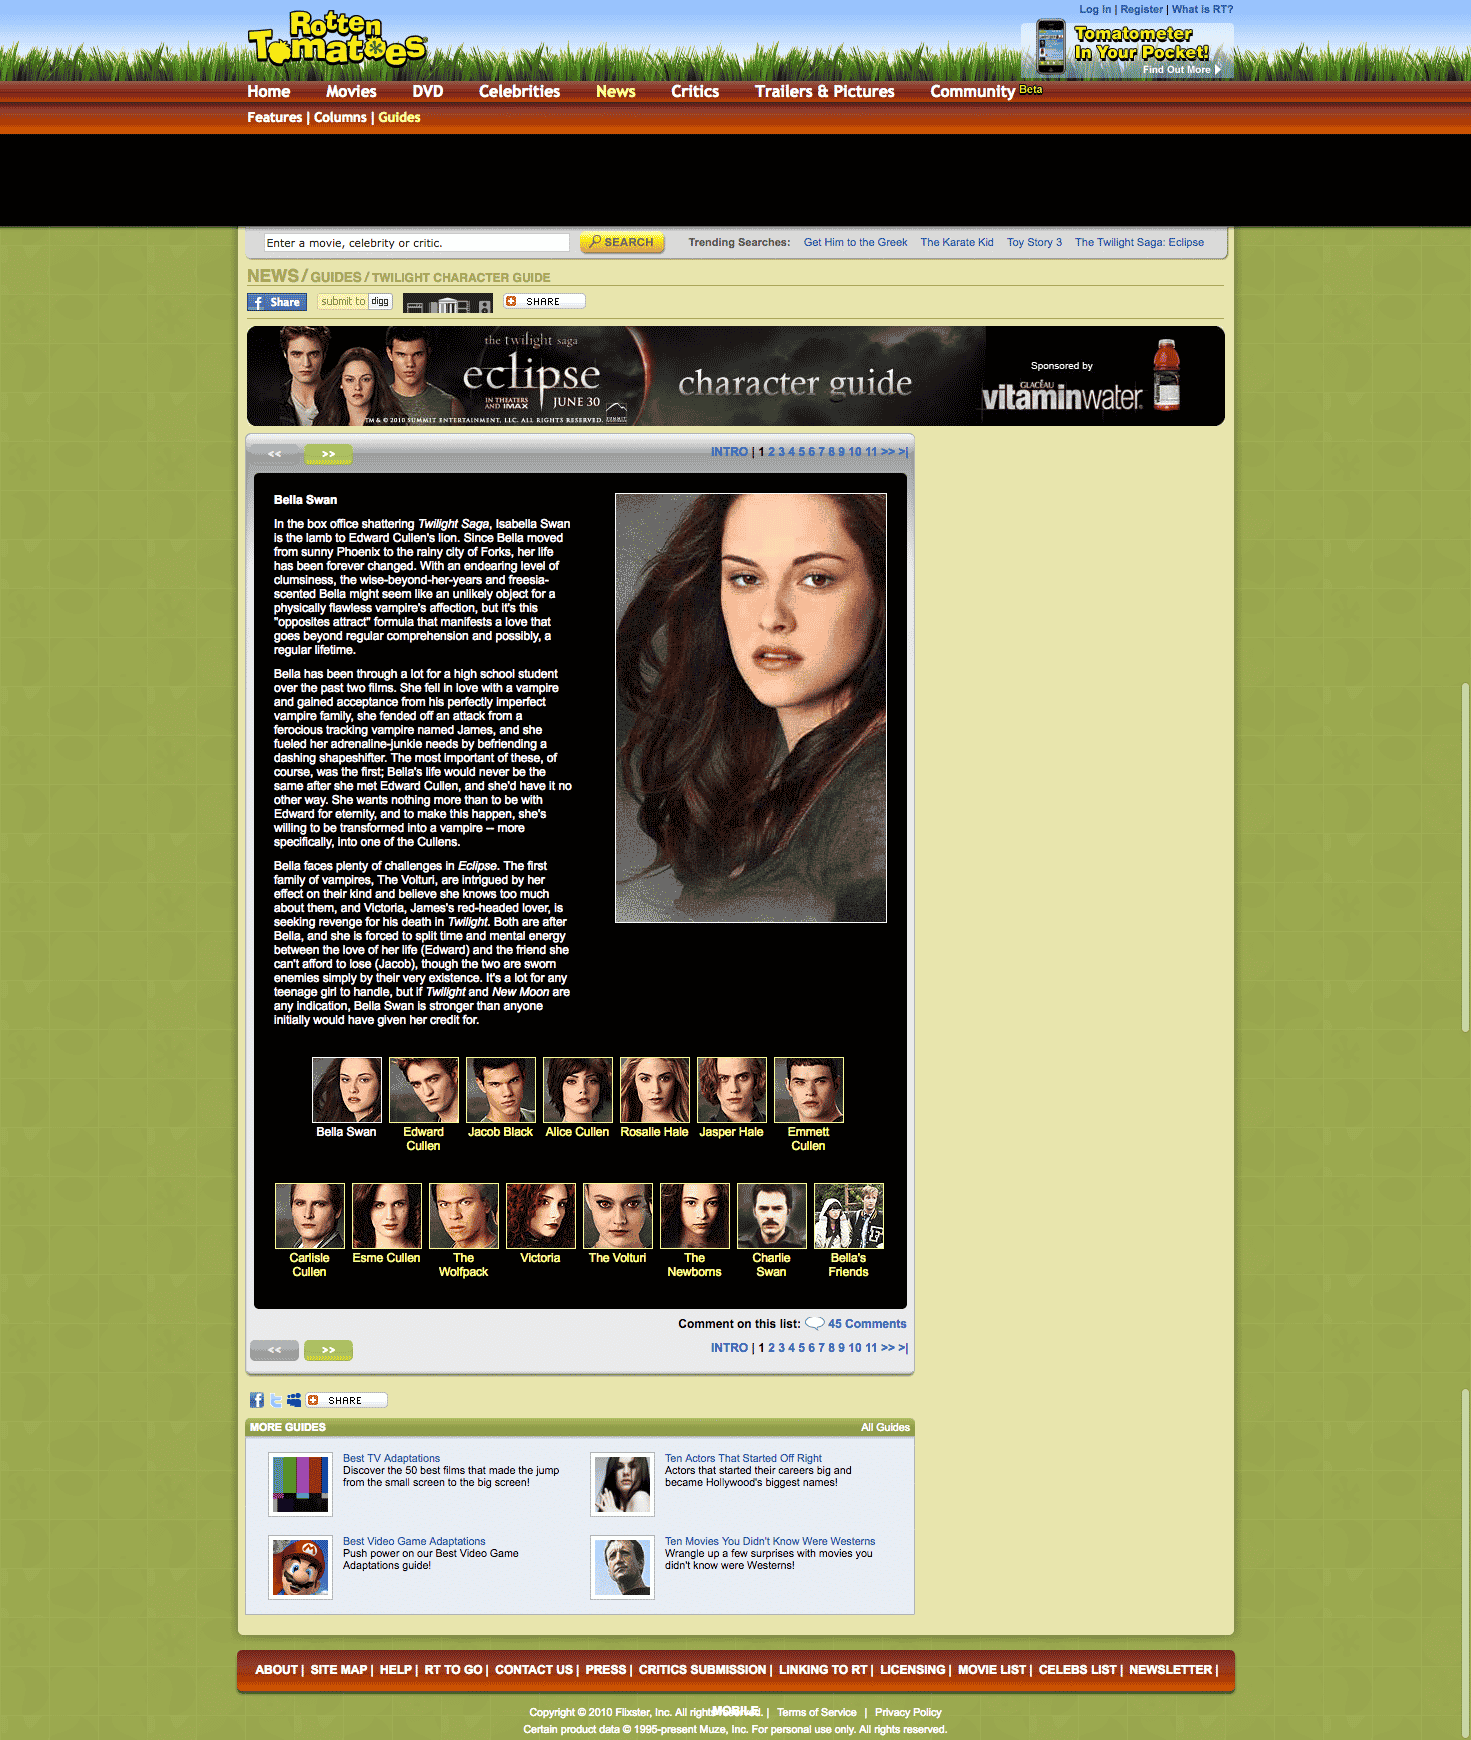 Rotten Tomatoes: Twilight Character Guide